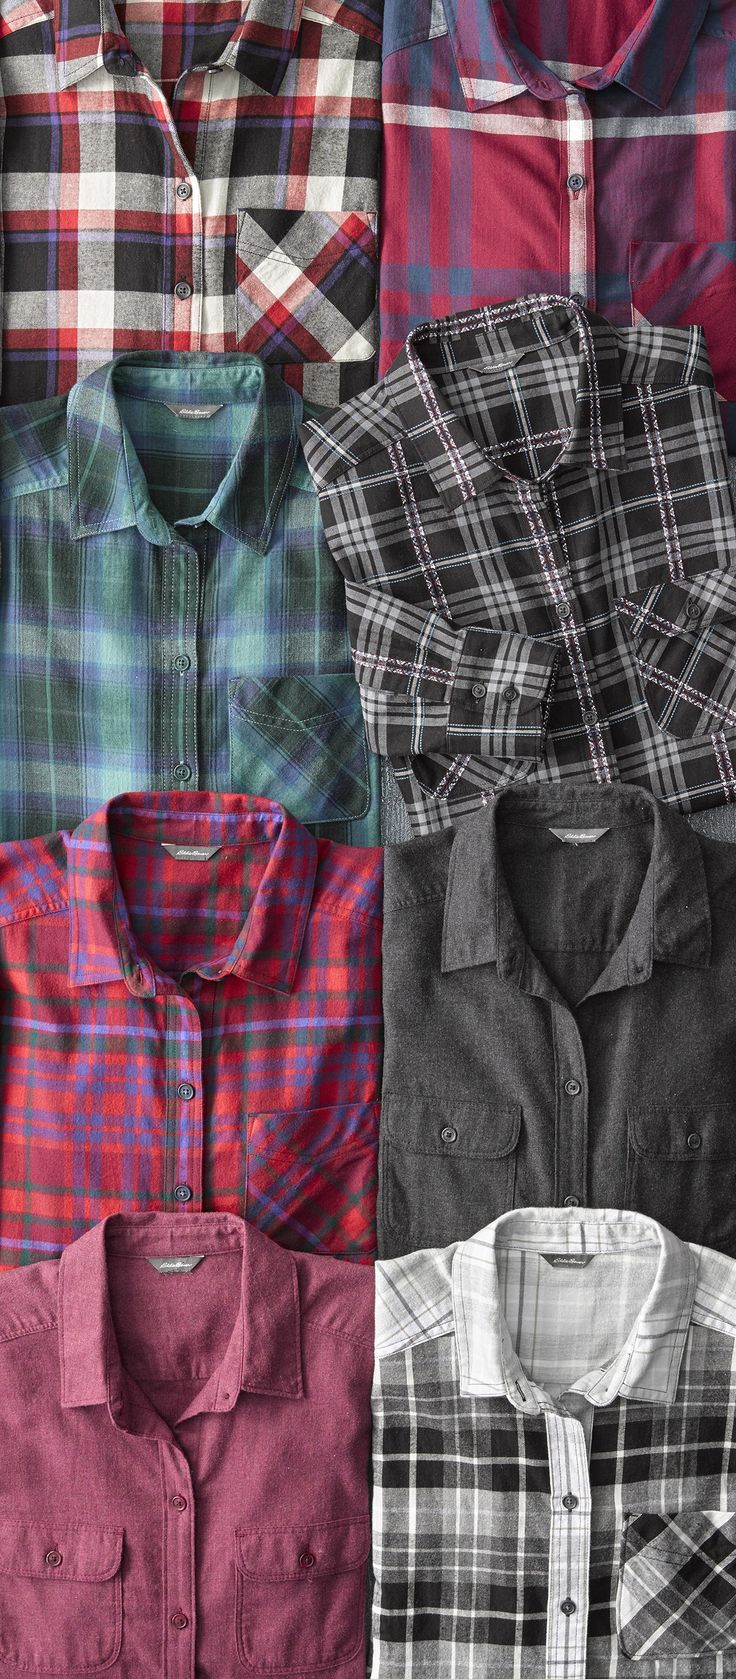 It's flannel season! Brushed on both sides for exceptional softness. Built for ultimate winter warmth.